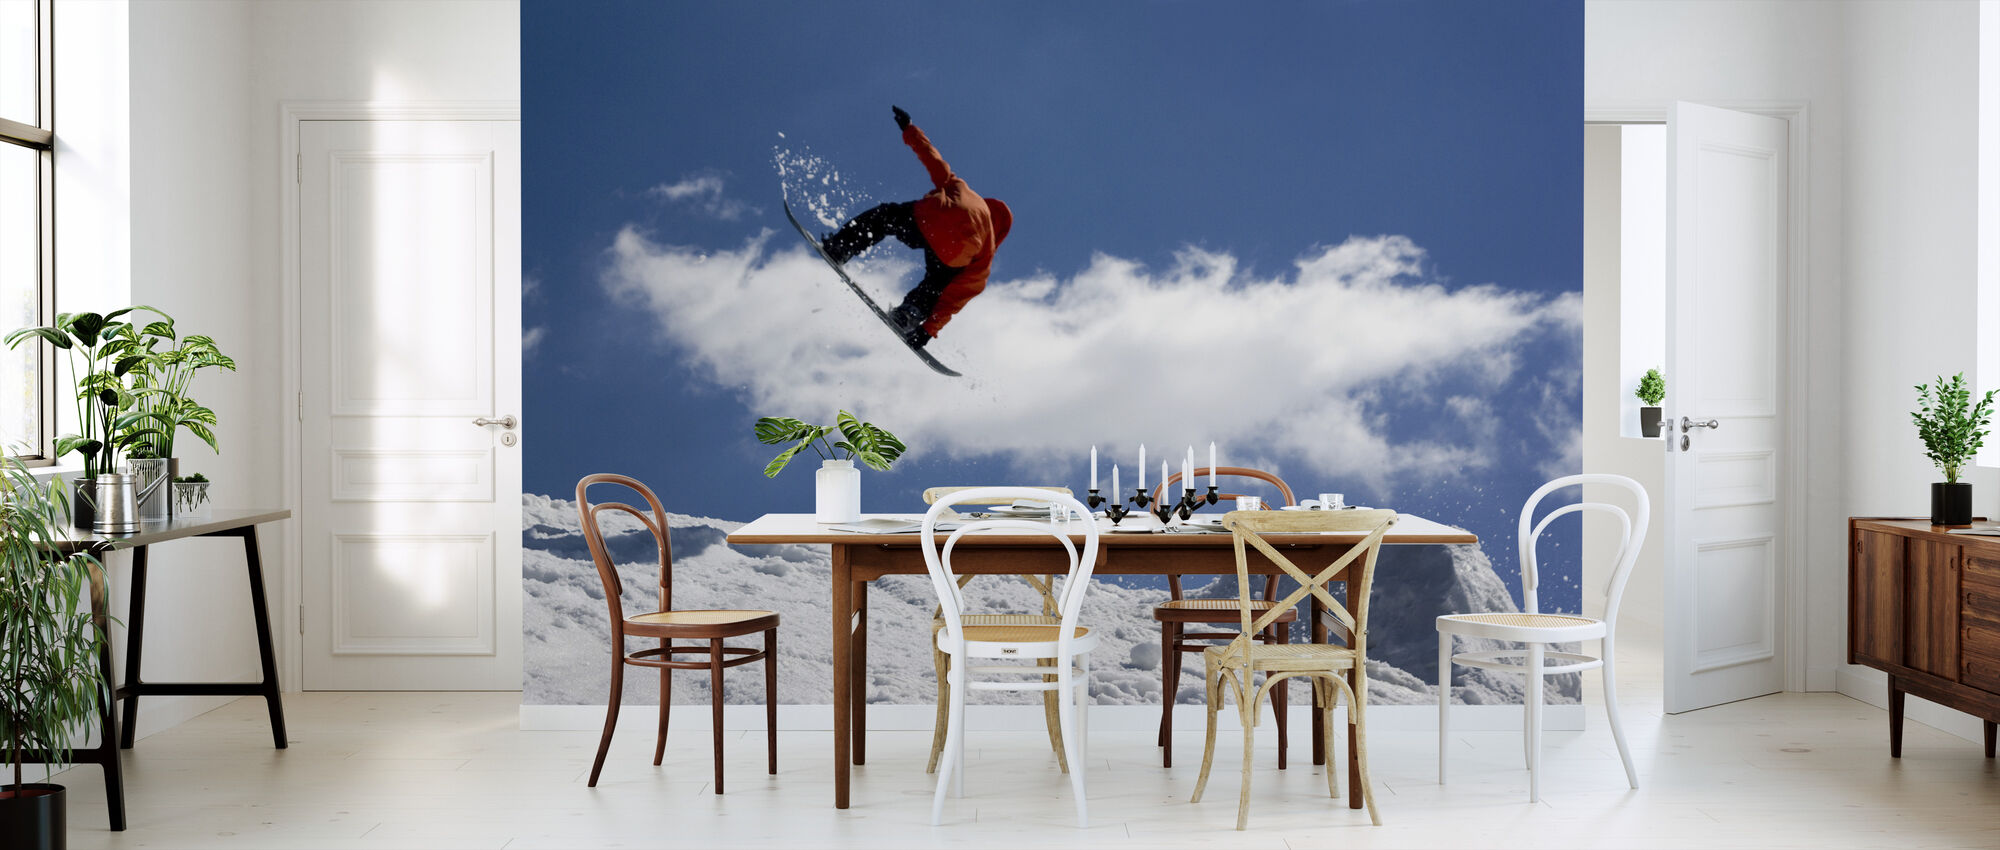 Snowboard Jump from Ramp - Wallpaper - Kitchen